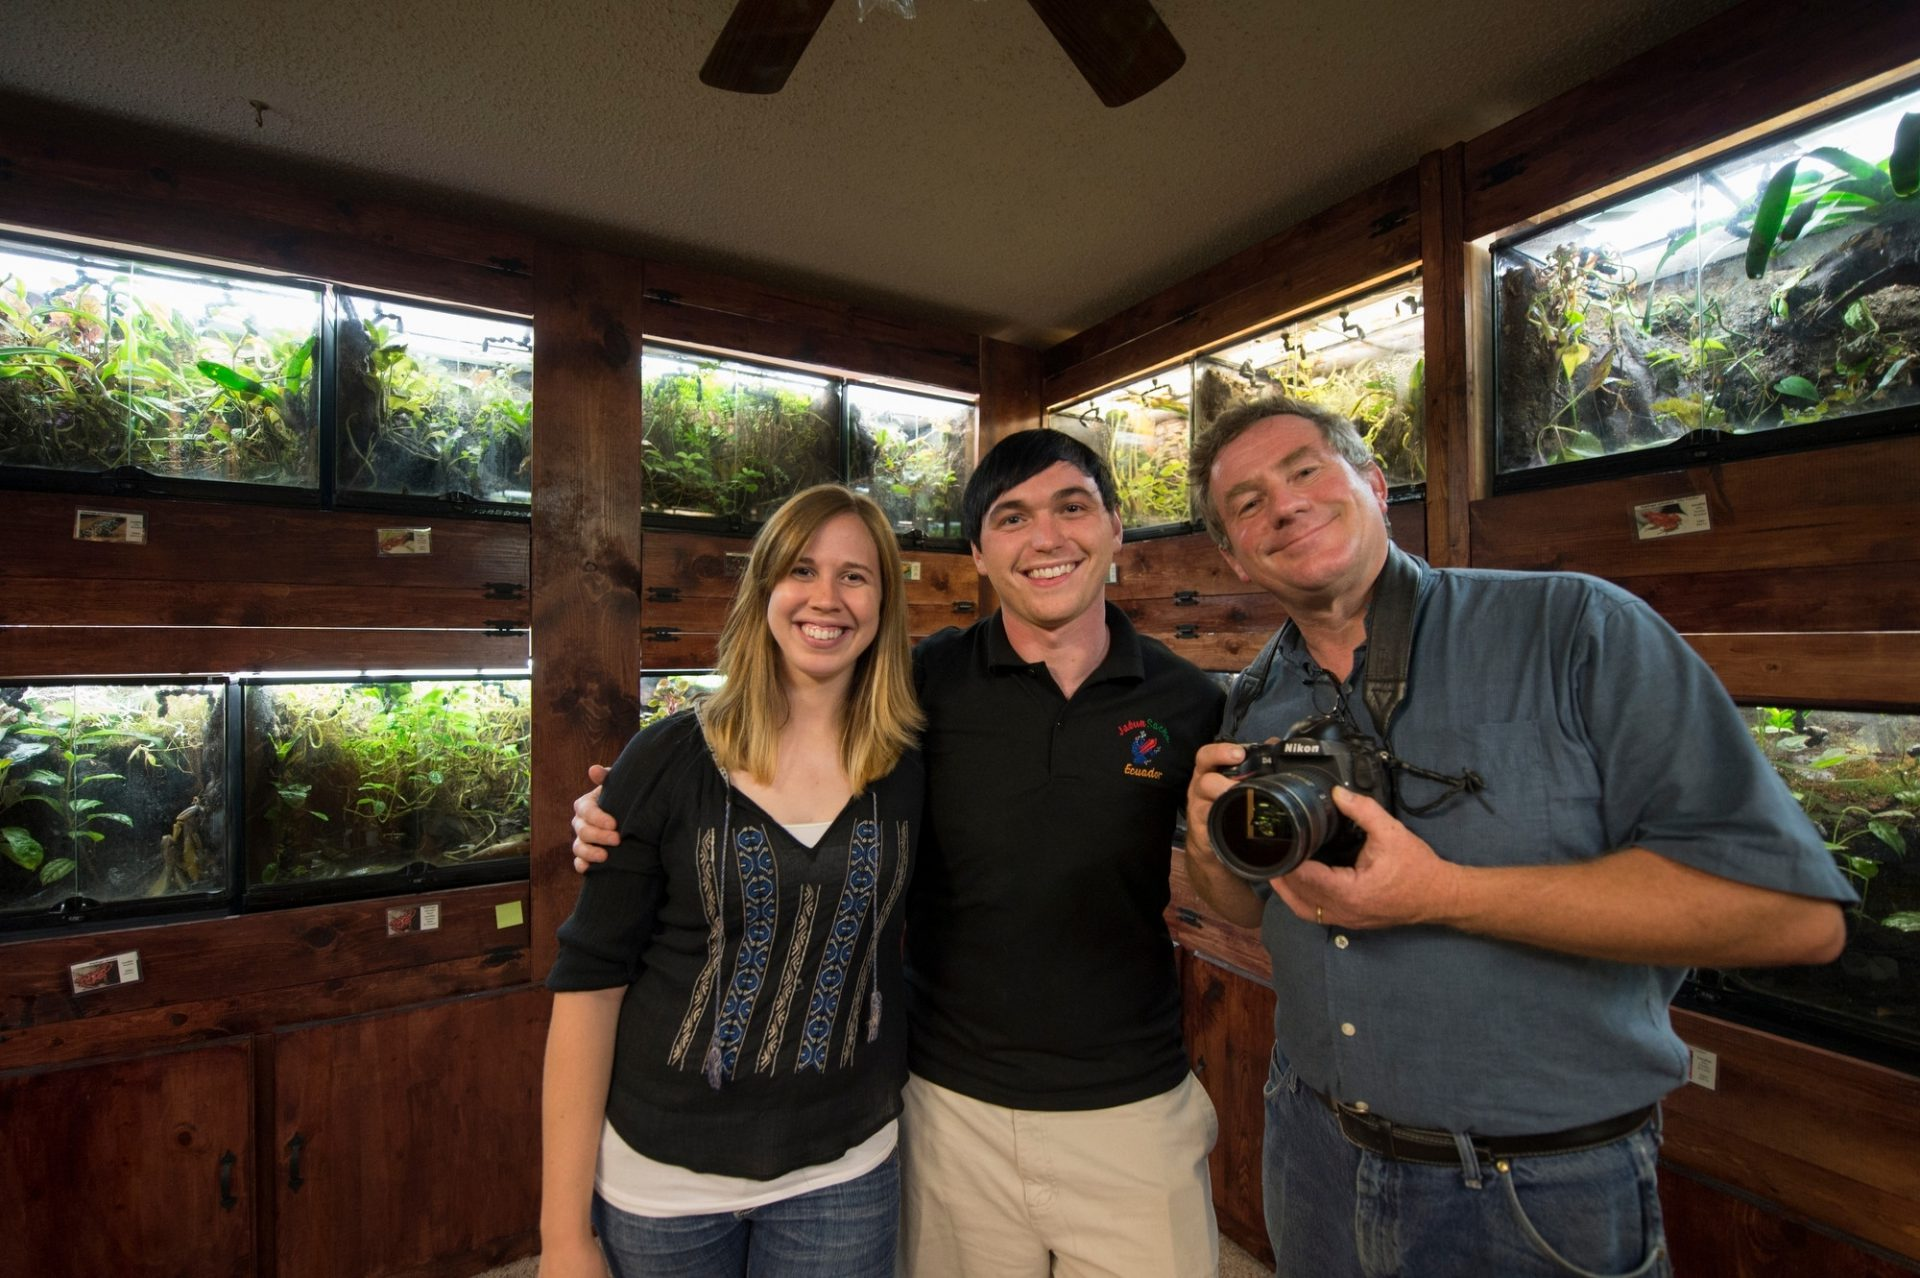 Photo: Behind the scenes, Joel Sartore and private collectors in the frog room of their home in Oklahoma City.